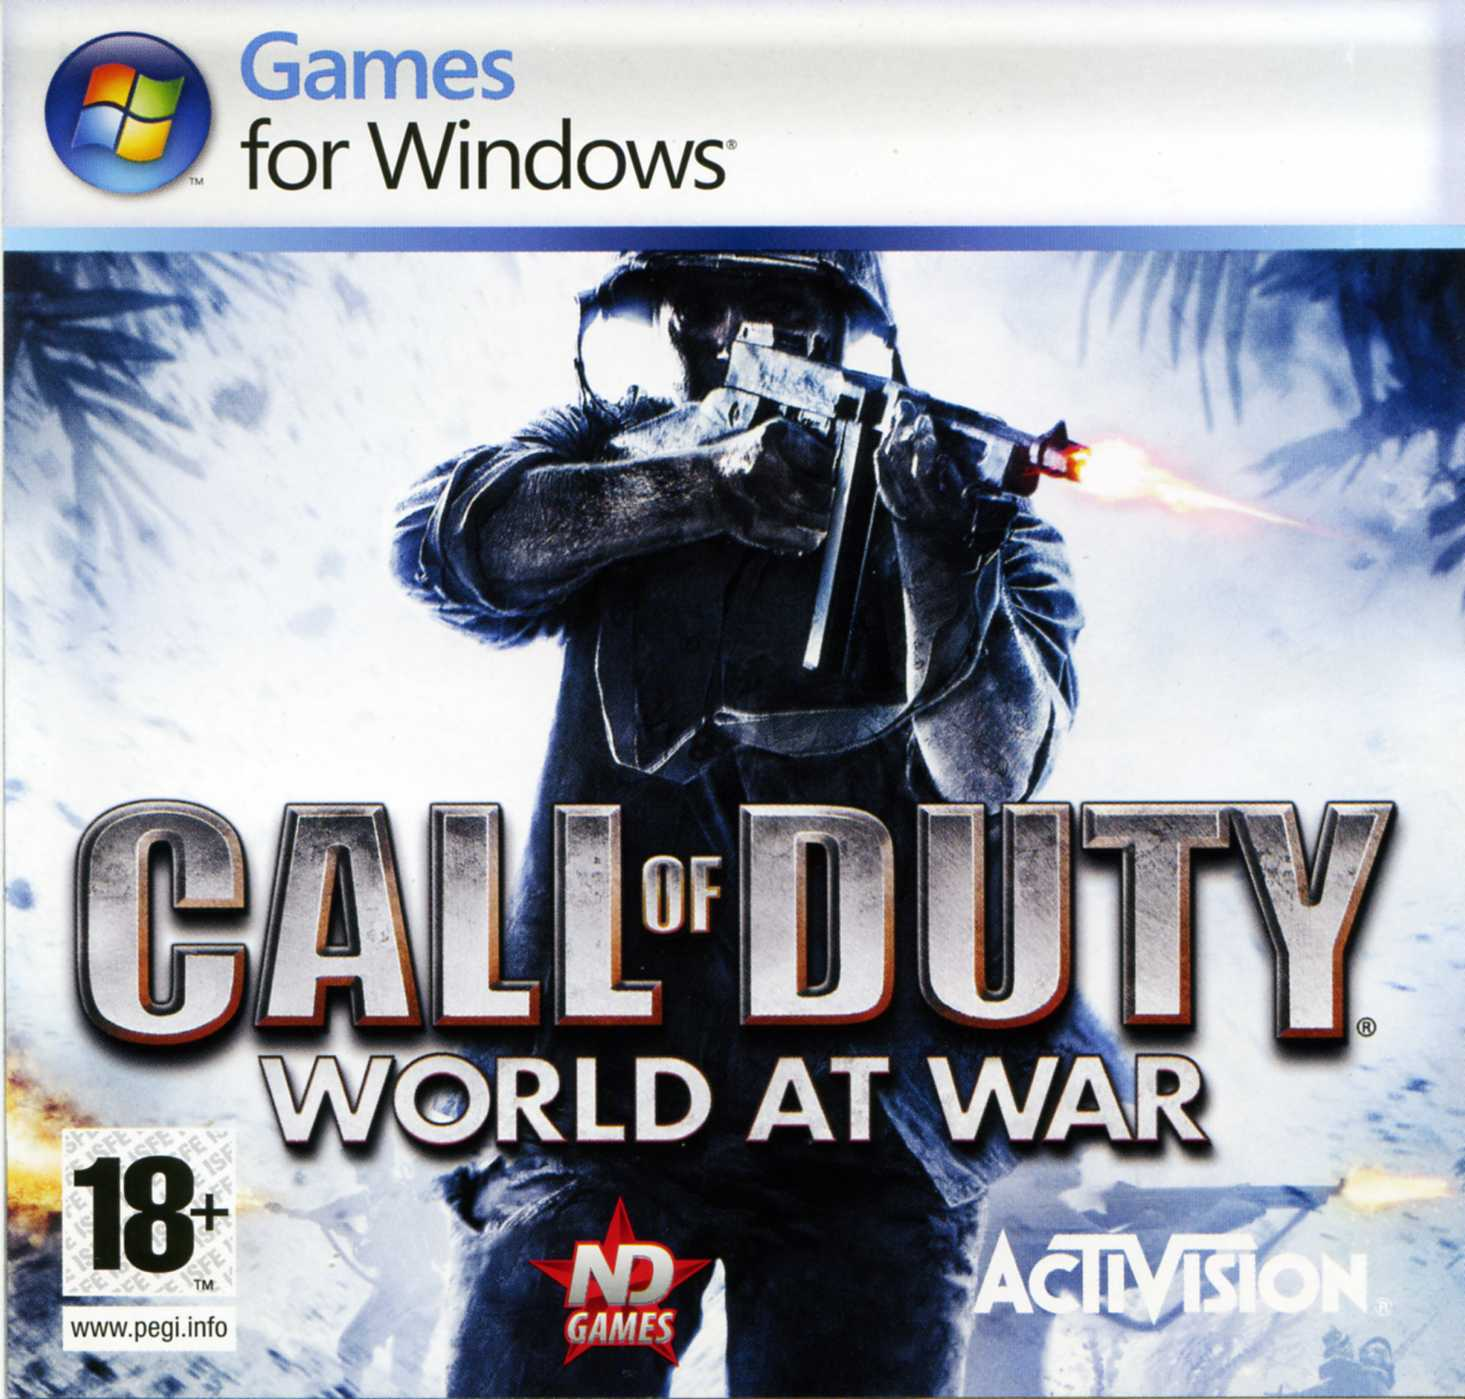 CALL OF DUTY 5 - НОВЫЙ ДИСК - CD-KEY - ФОТО и ССЫЛКА